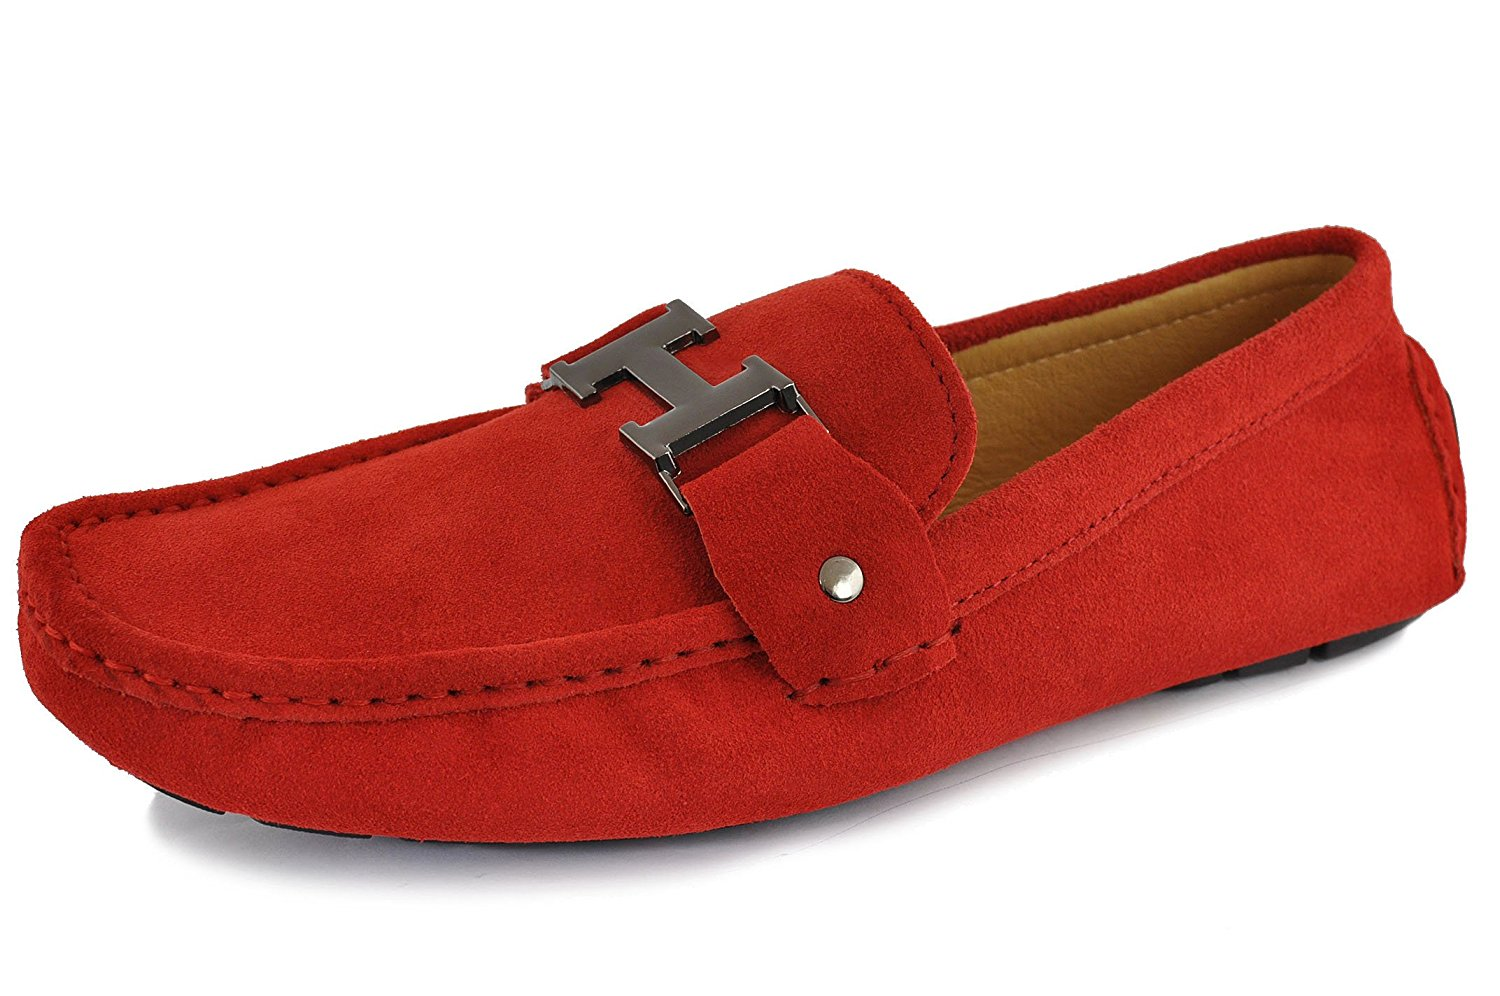 61ebdf568fb Get Quotations · Fulinken Men s Moccasin Red Slip On Silver Buckle Leather  Loafers Causal Mens Shoes Business Shoes Car